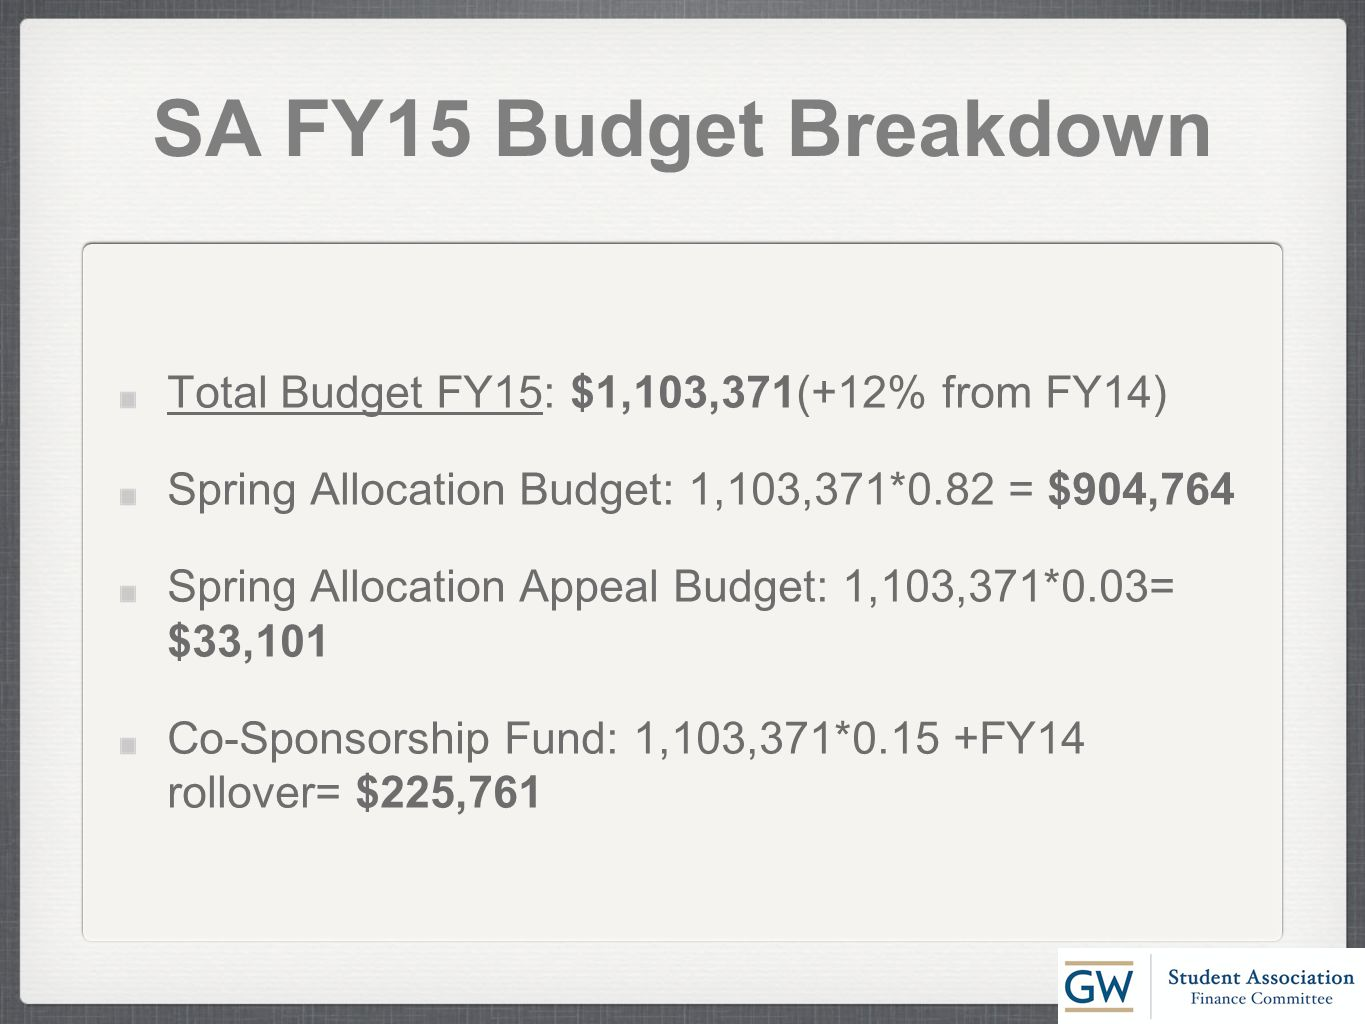 SA FY15 Budget Breakdown Total Budget FY15: $1,103,371(+12% from FY14) Spring Allocation Budget: 1,103,371*0.82 = $904,764 Spring Allocation Appeal Budget: 1,103,371*0.03= $33,101 Co-Sponsorship Fund: 1,103,371*0.15 +FY14 rollover= $225,761